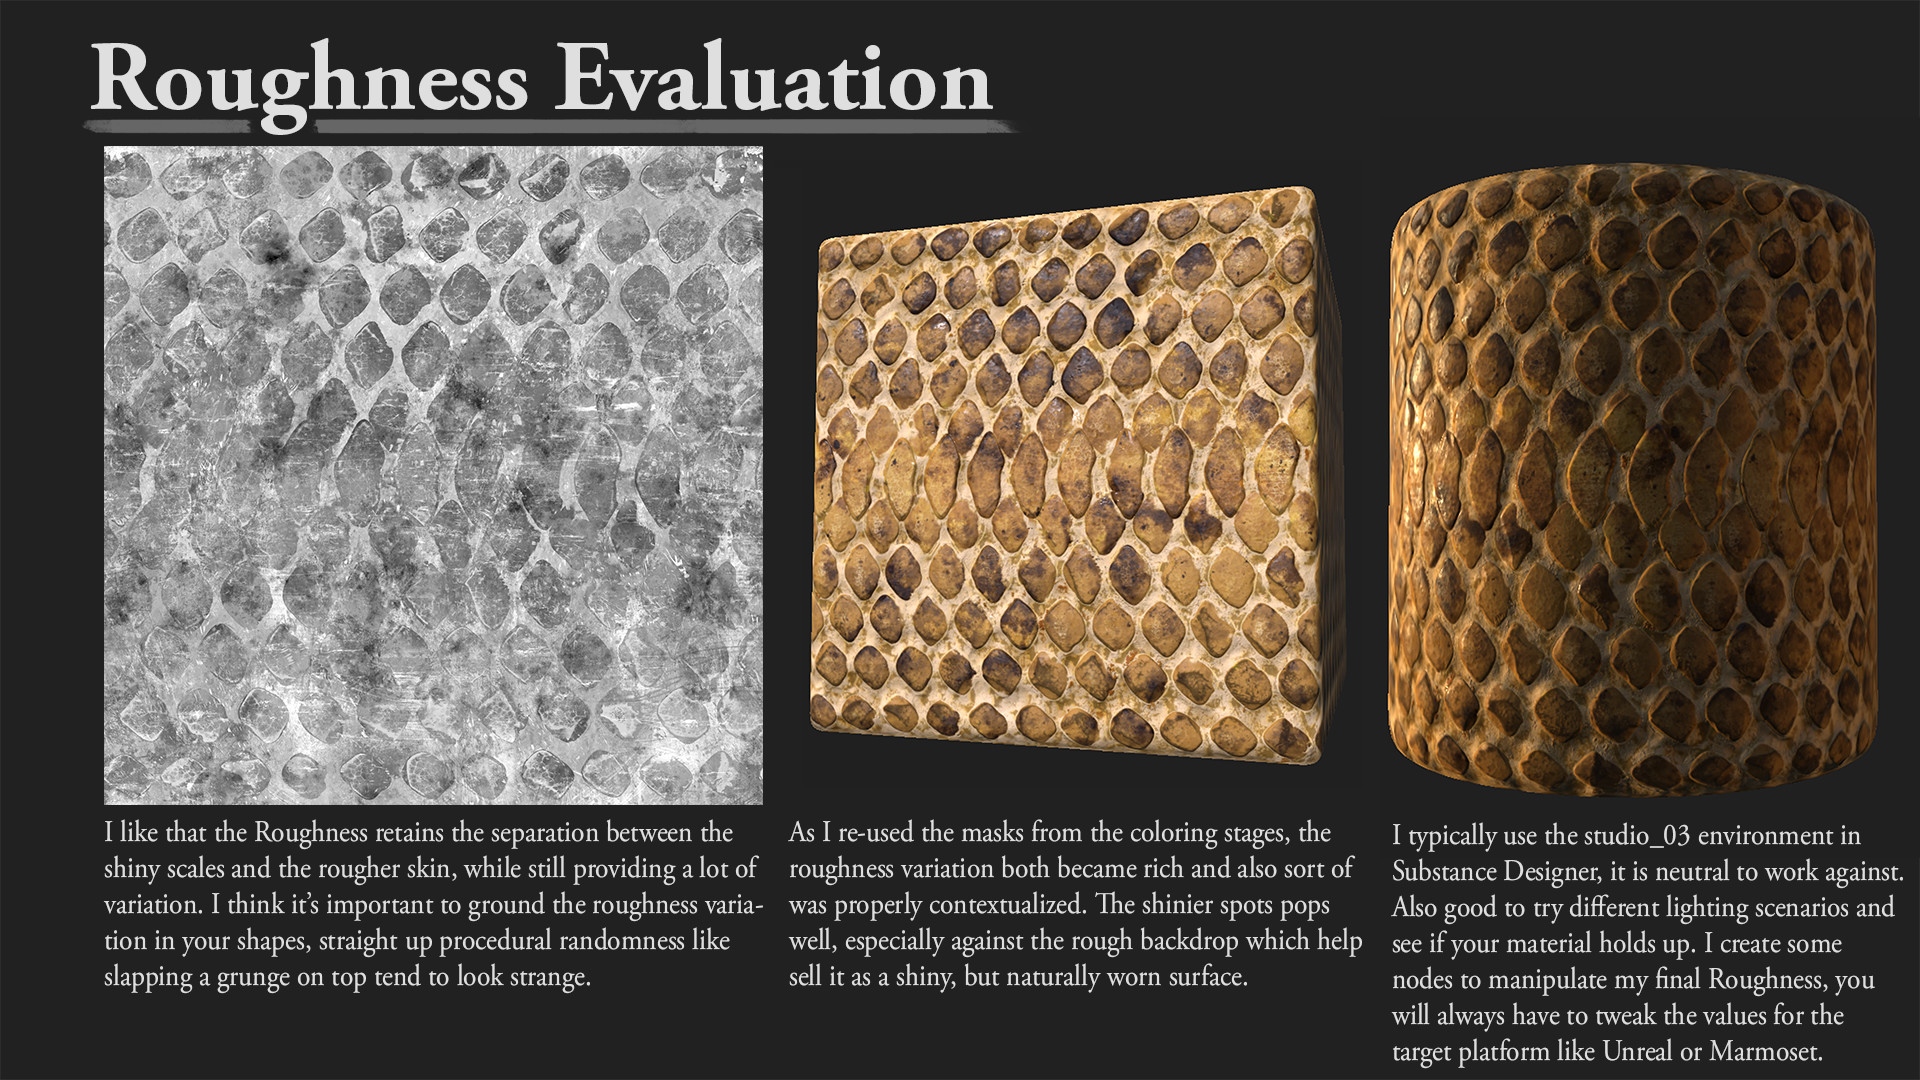 Olle norling roughness evaluation smallersize